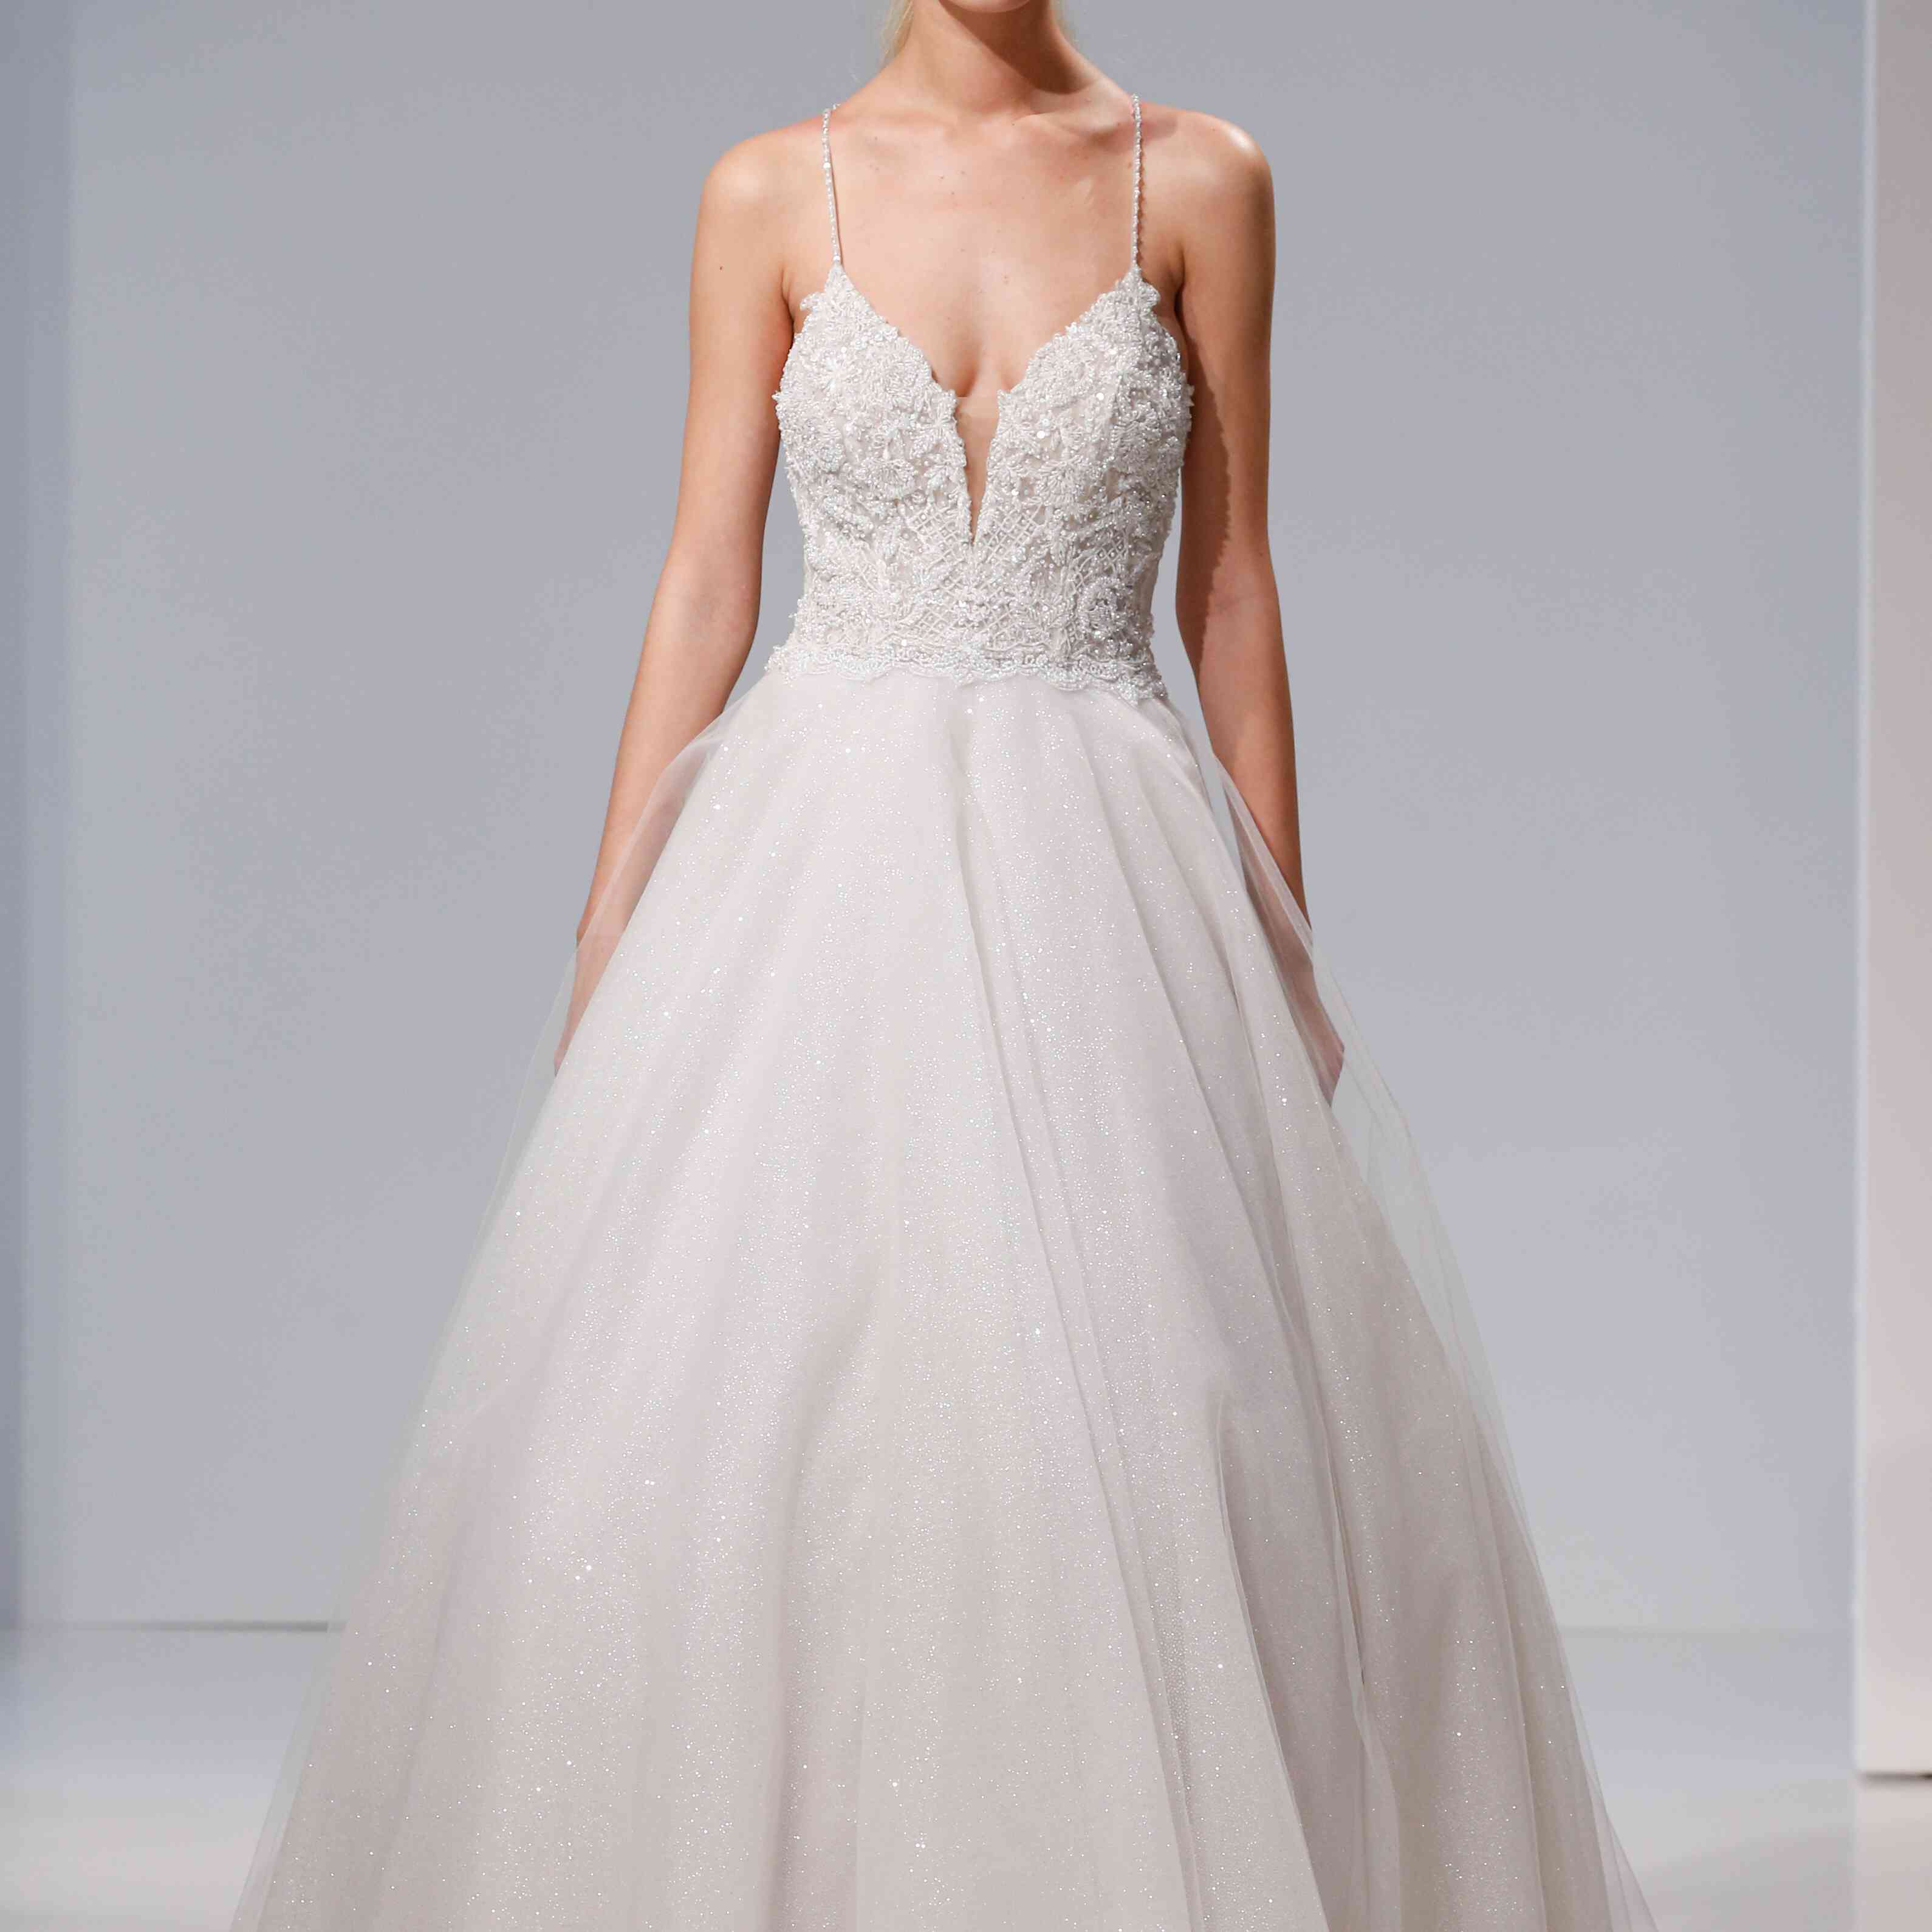 Morilee By Madeline Gardner Bridal Wedding Dress Collection Fall 2020